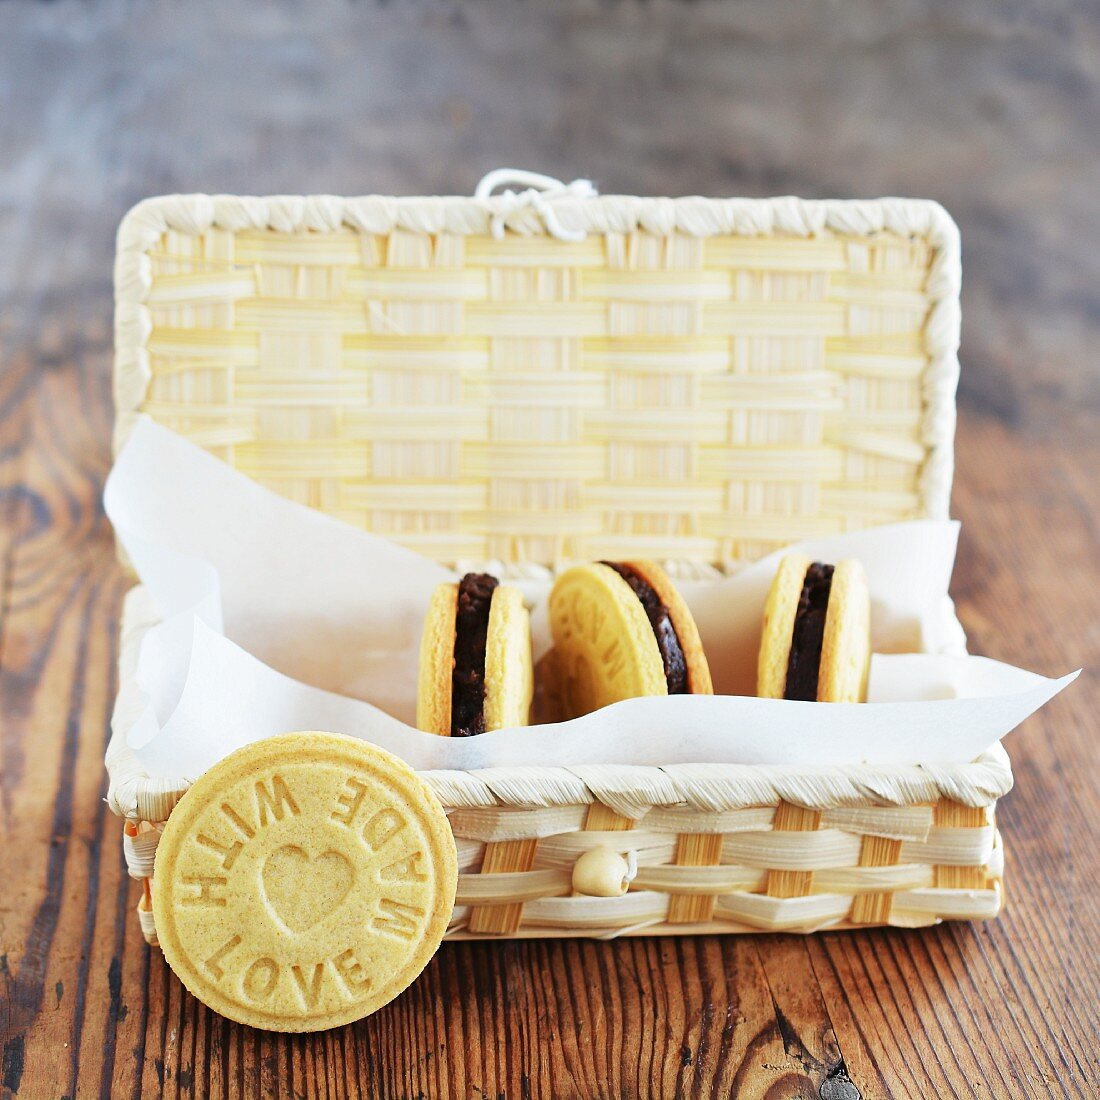 Homemade biscuits with chocolate cream in a gift basket